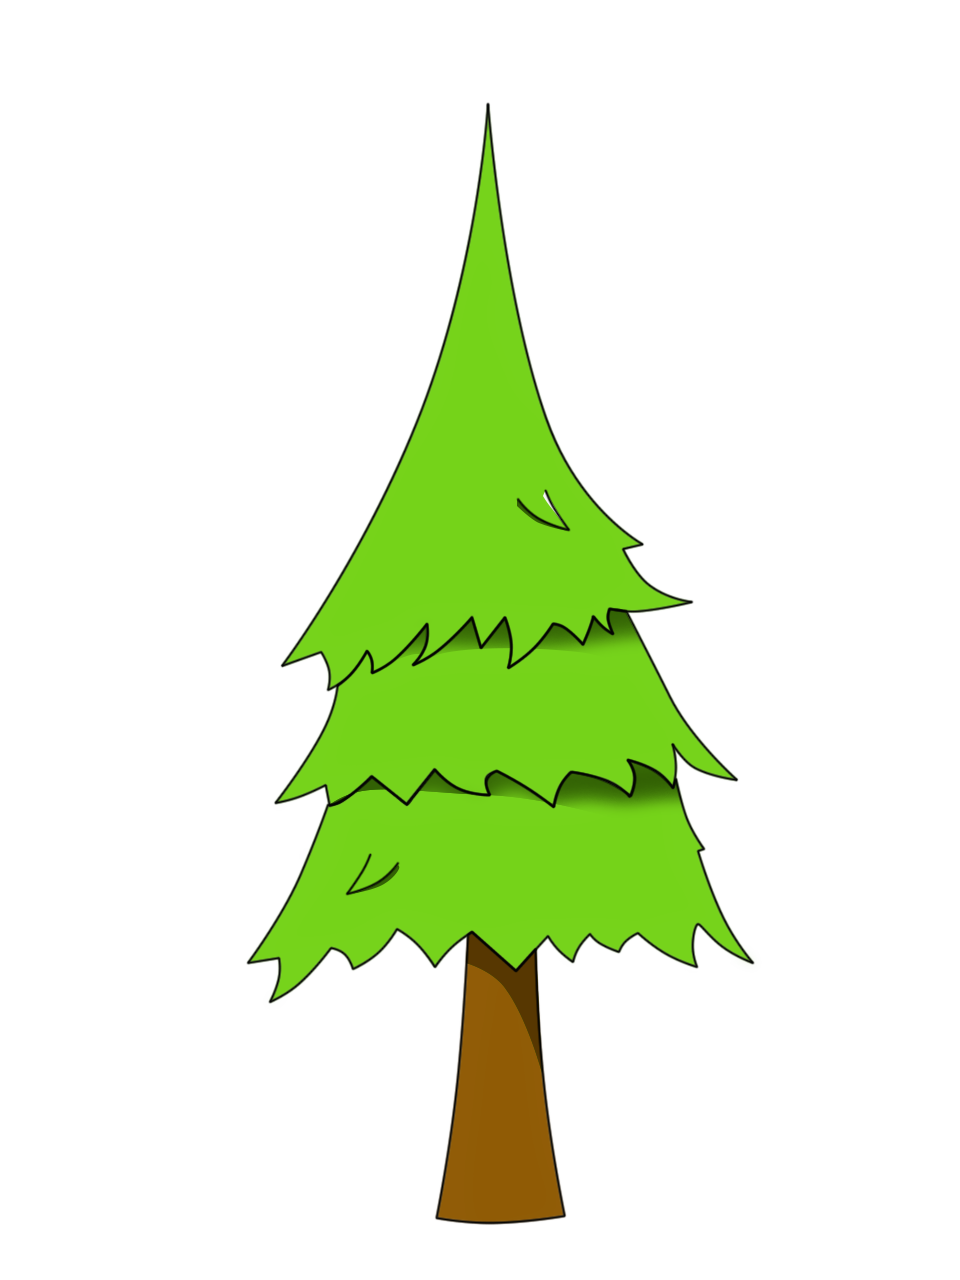 Png opengameart org treepng. Leaf clipart pine tree